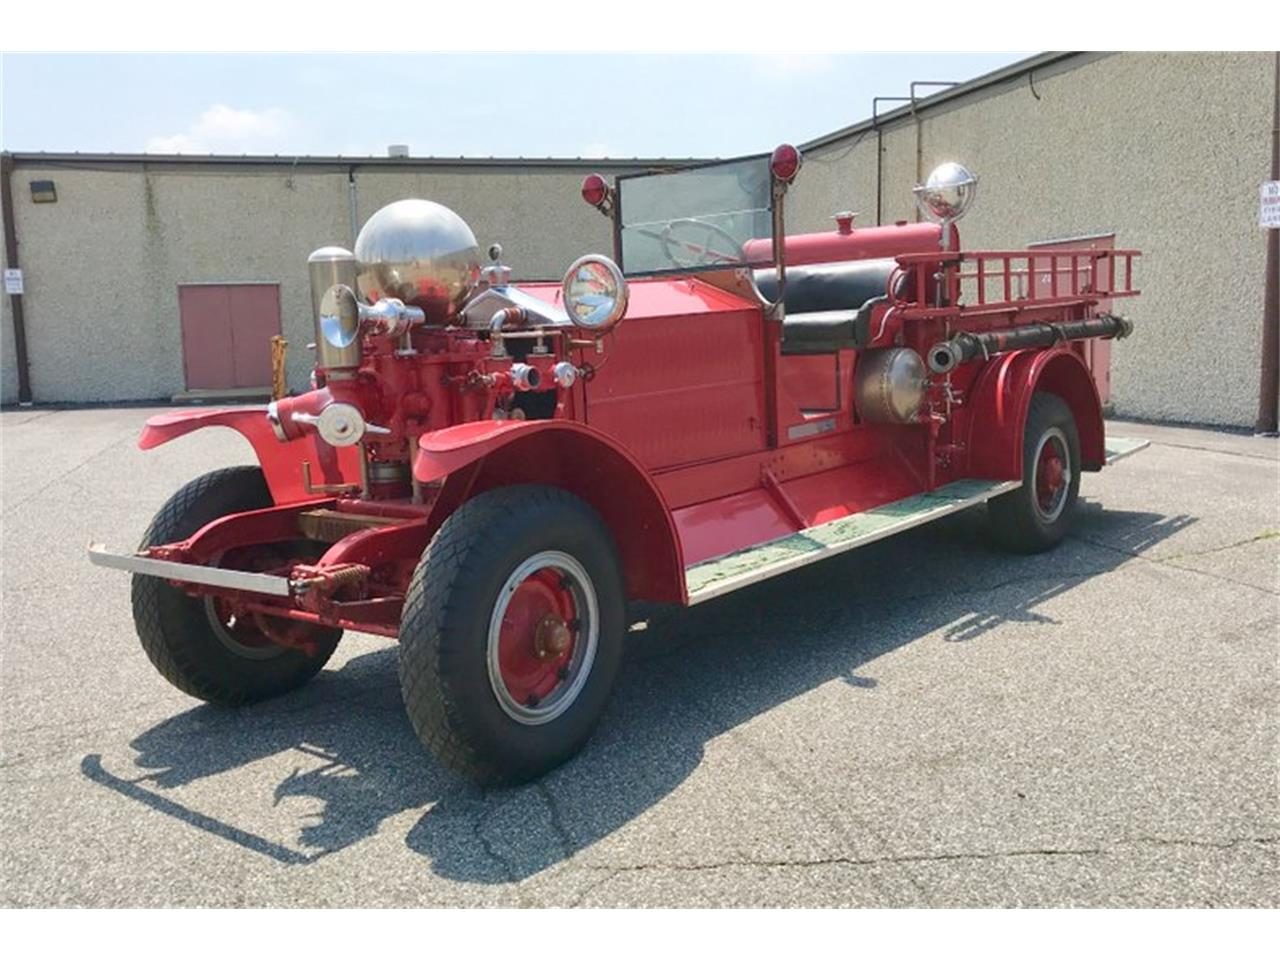 1920 Ahrens-Fox Fire Truck for sale in Morgantown, PA